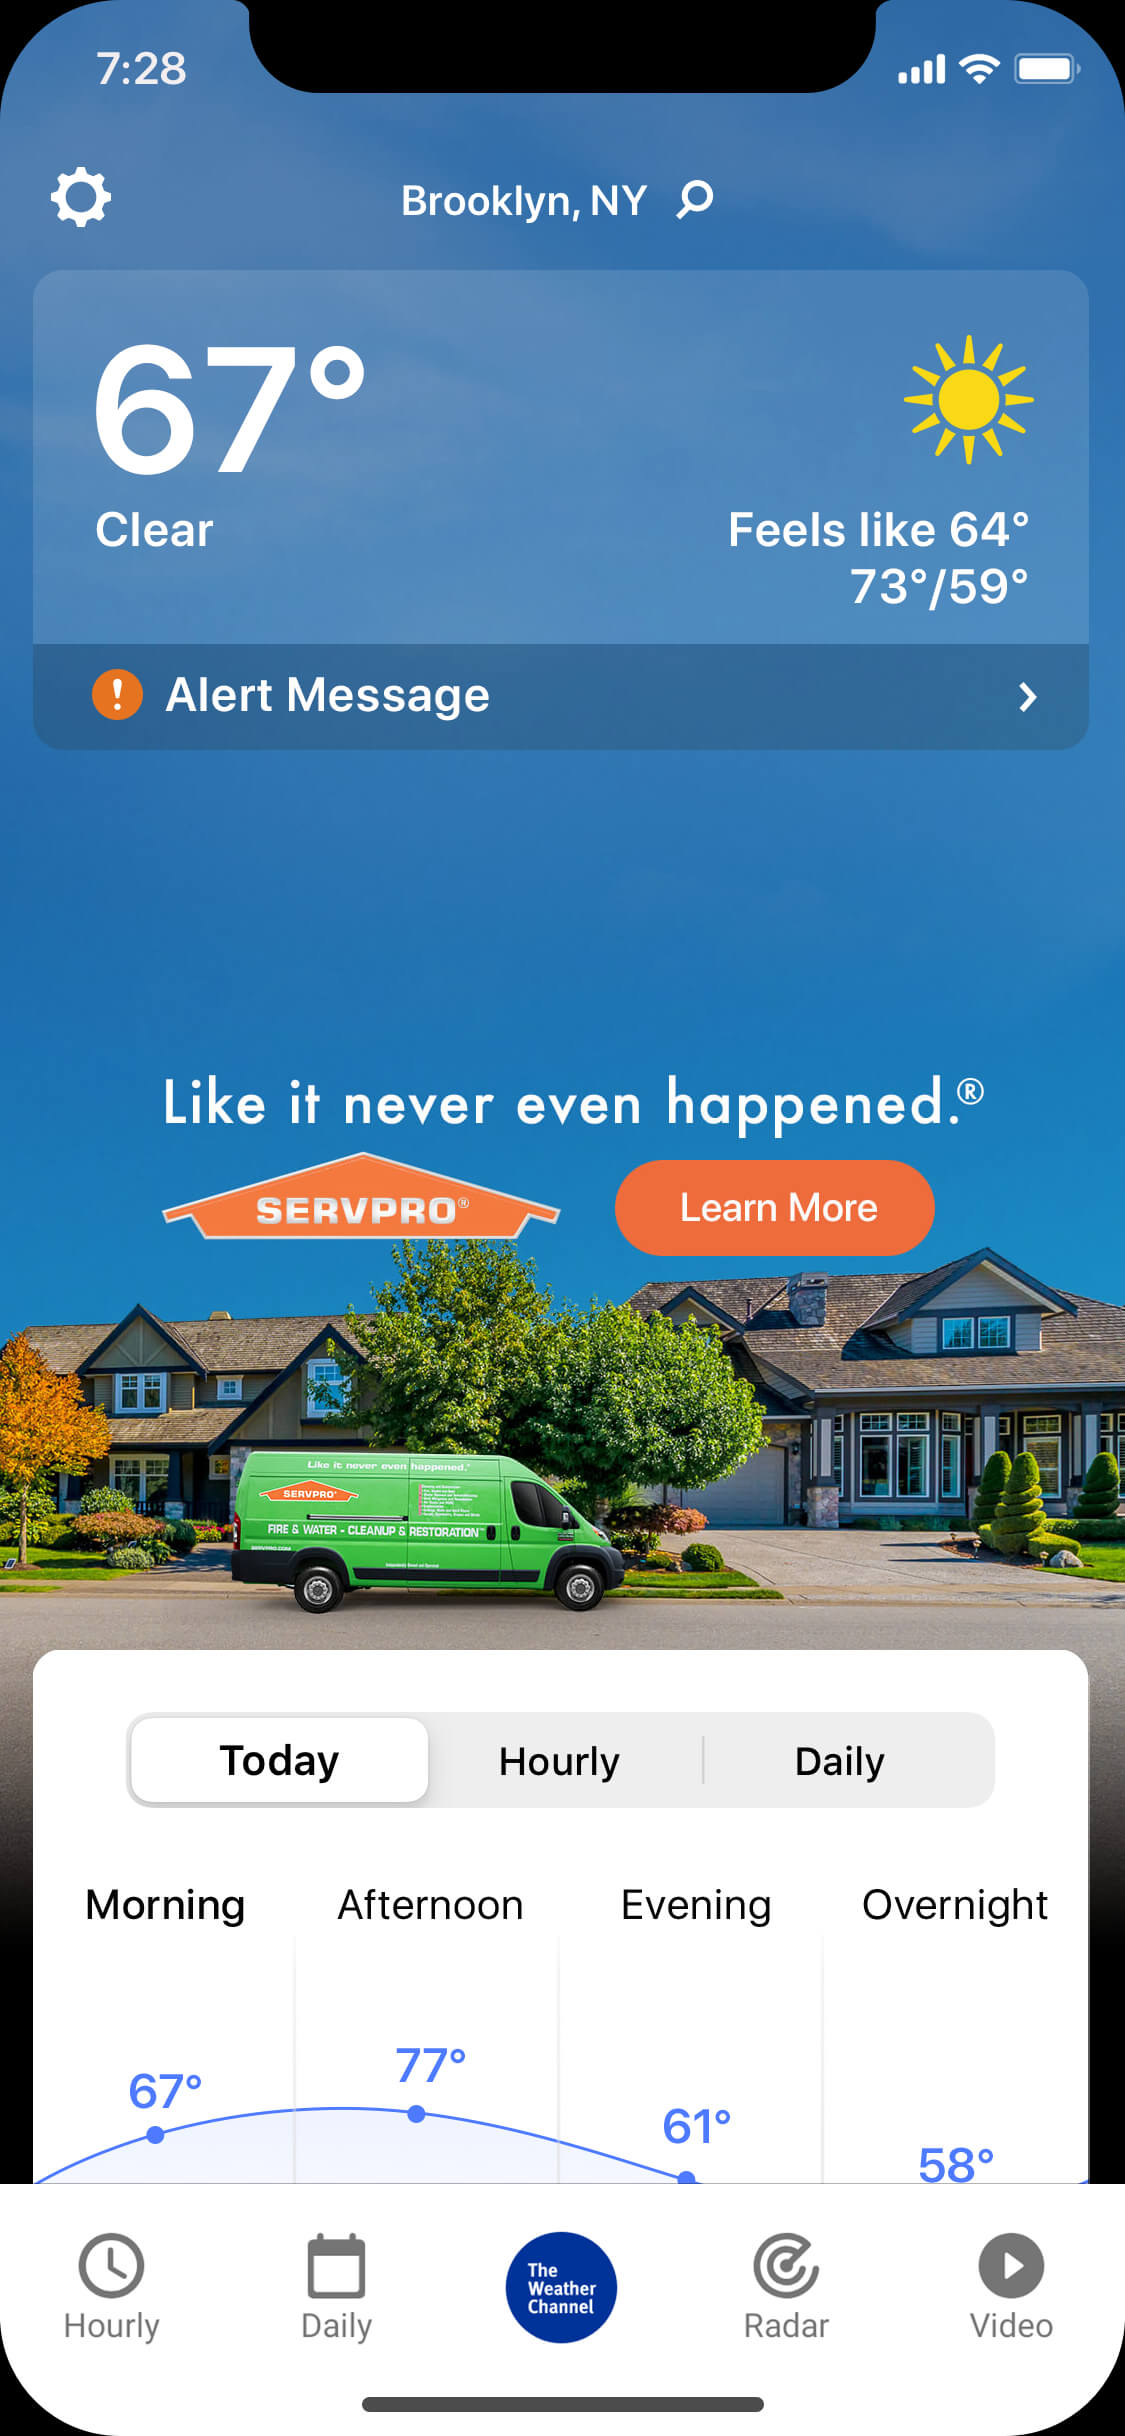 Servpro_MA_IM_Residential_clear_day